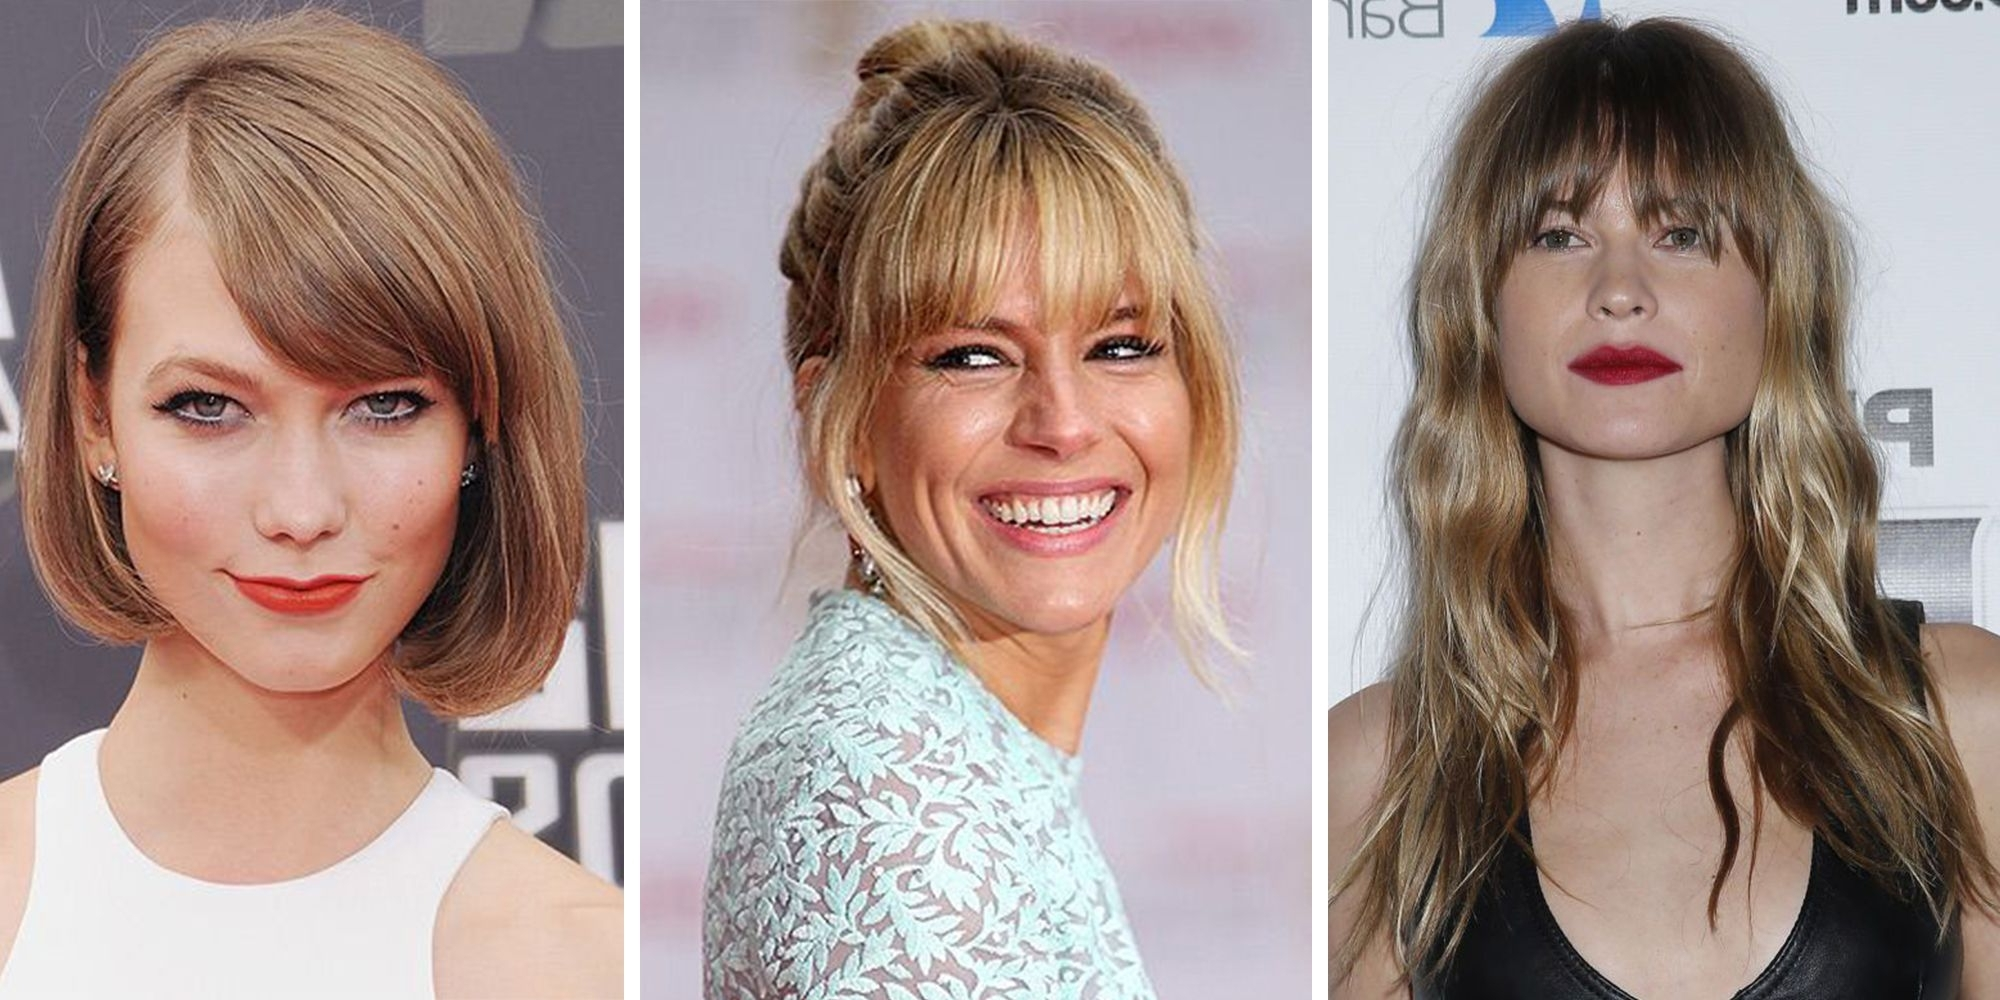 Fashionable High Pony Hairstyles With Contrasting Bangs With 39 Fringe Hair Cuts For 2018 – Women's Hairstyle Inspiration (View 14 of 20)